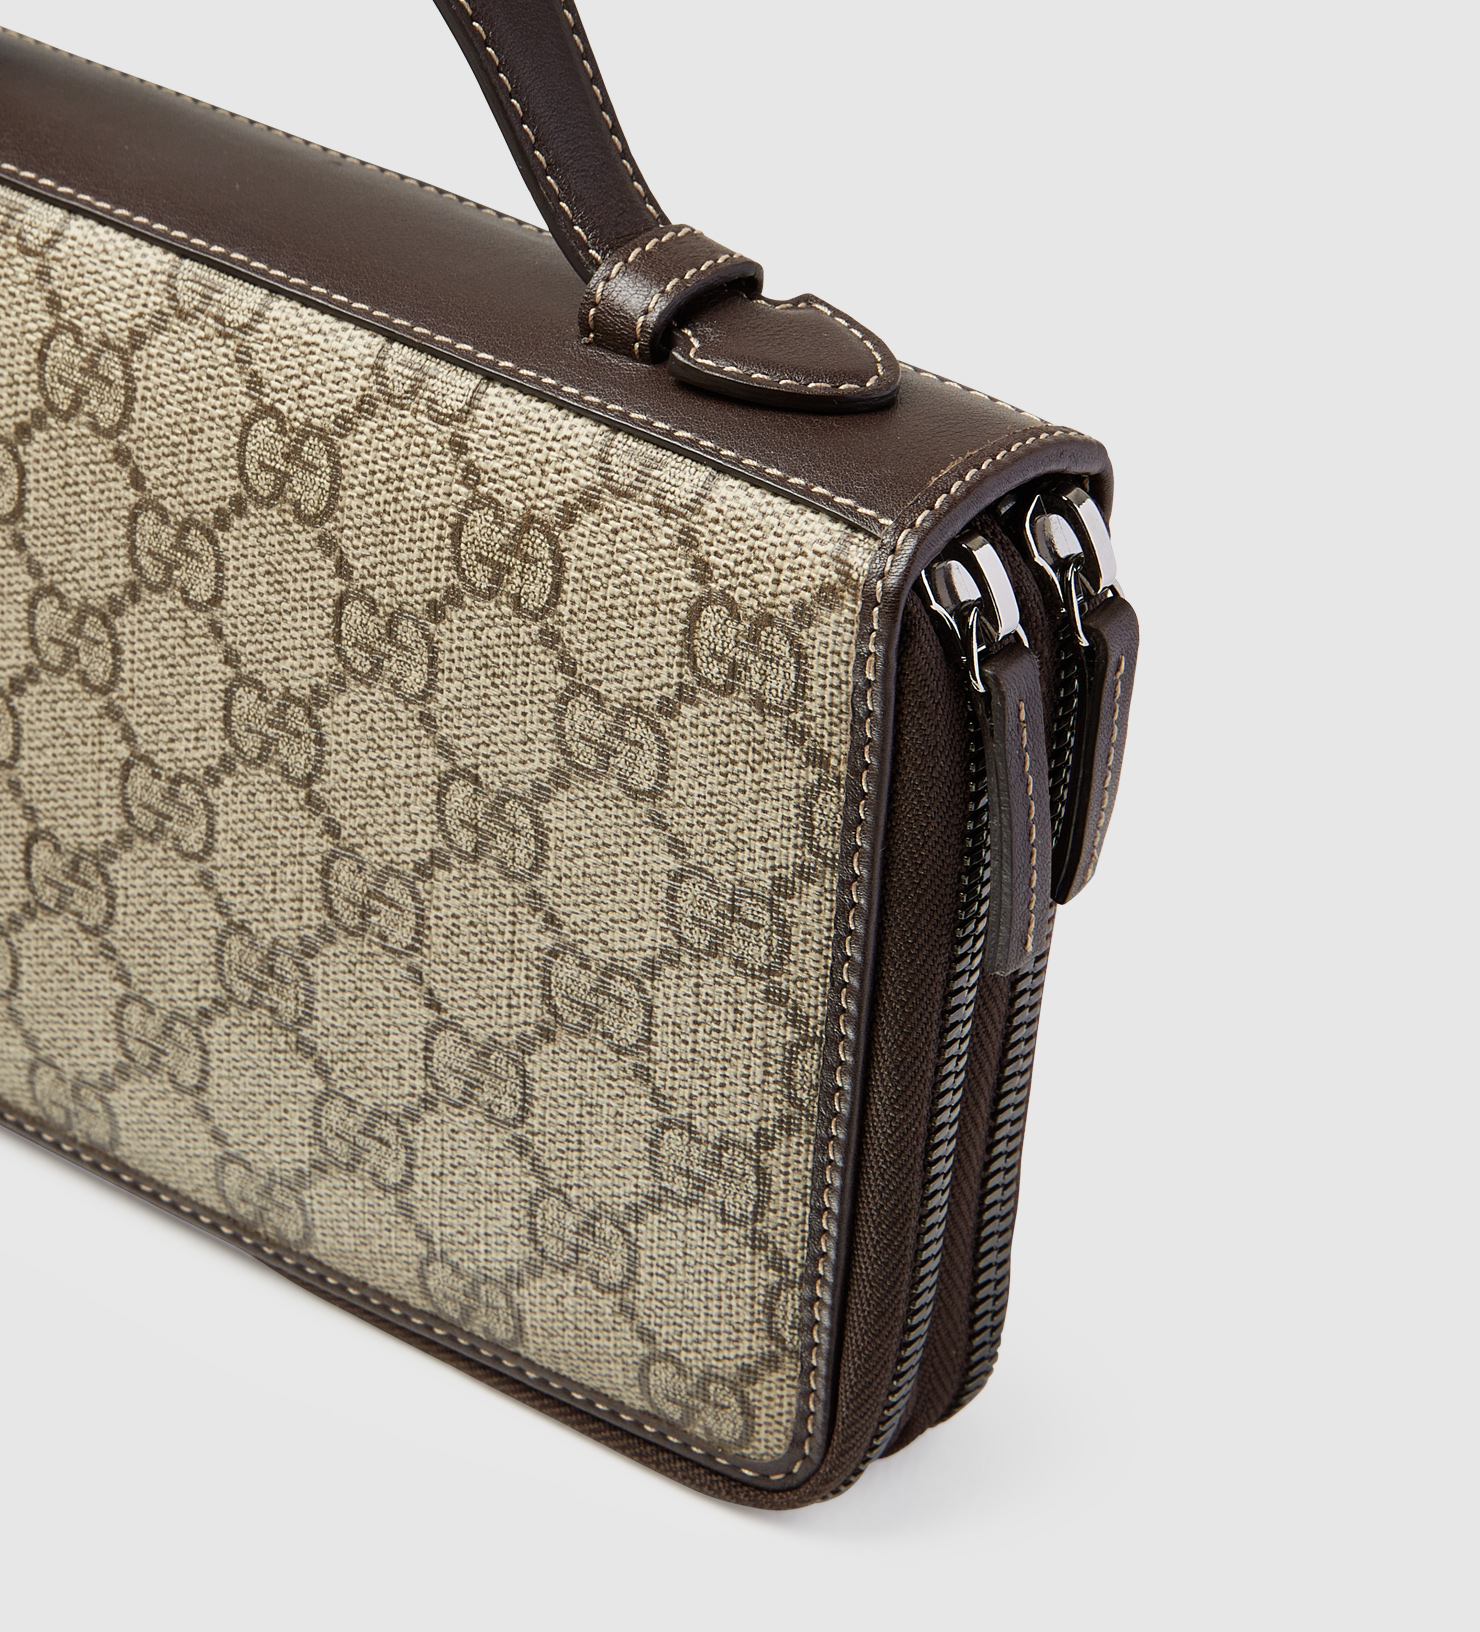 d3fed041e2d7 Gucci Gg Supreme Canvas Travel Document Case in Natural for Men - Lyst